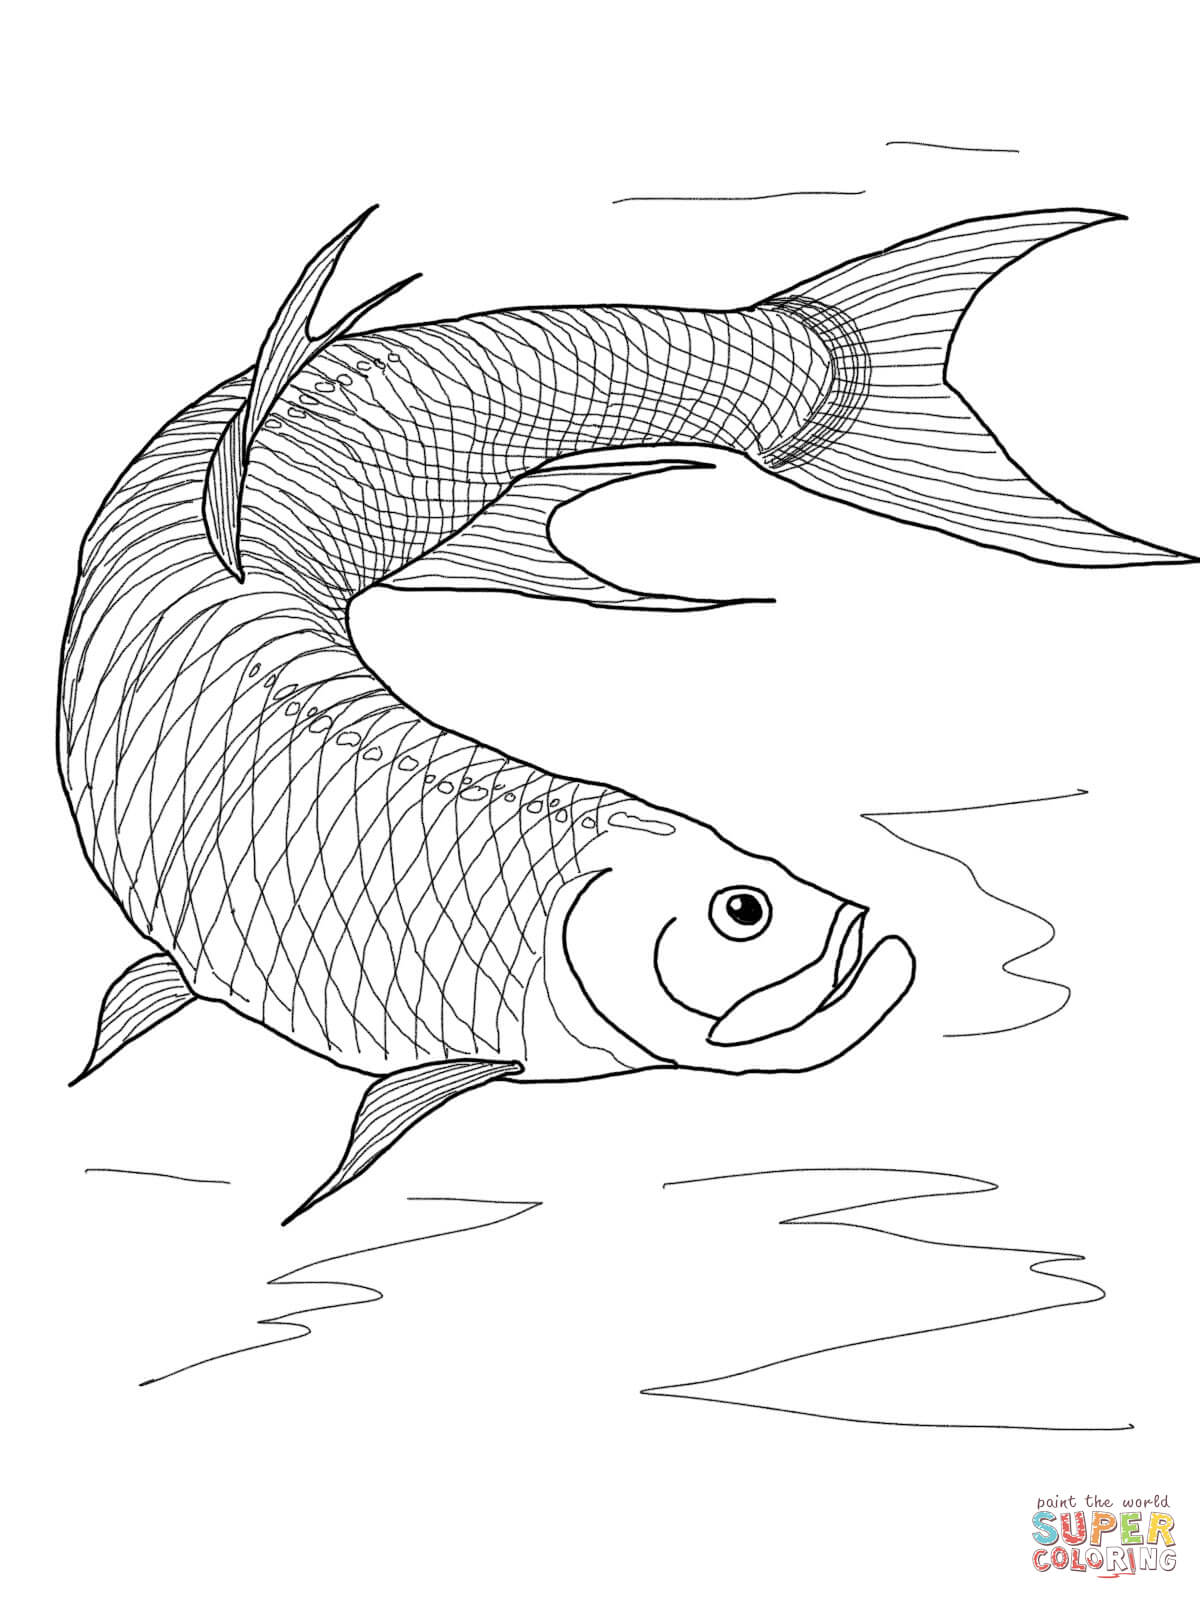 Tarpon Fish Coloring Page Free Printable Coloring Pages